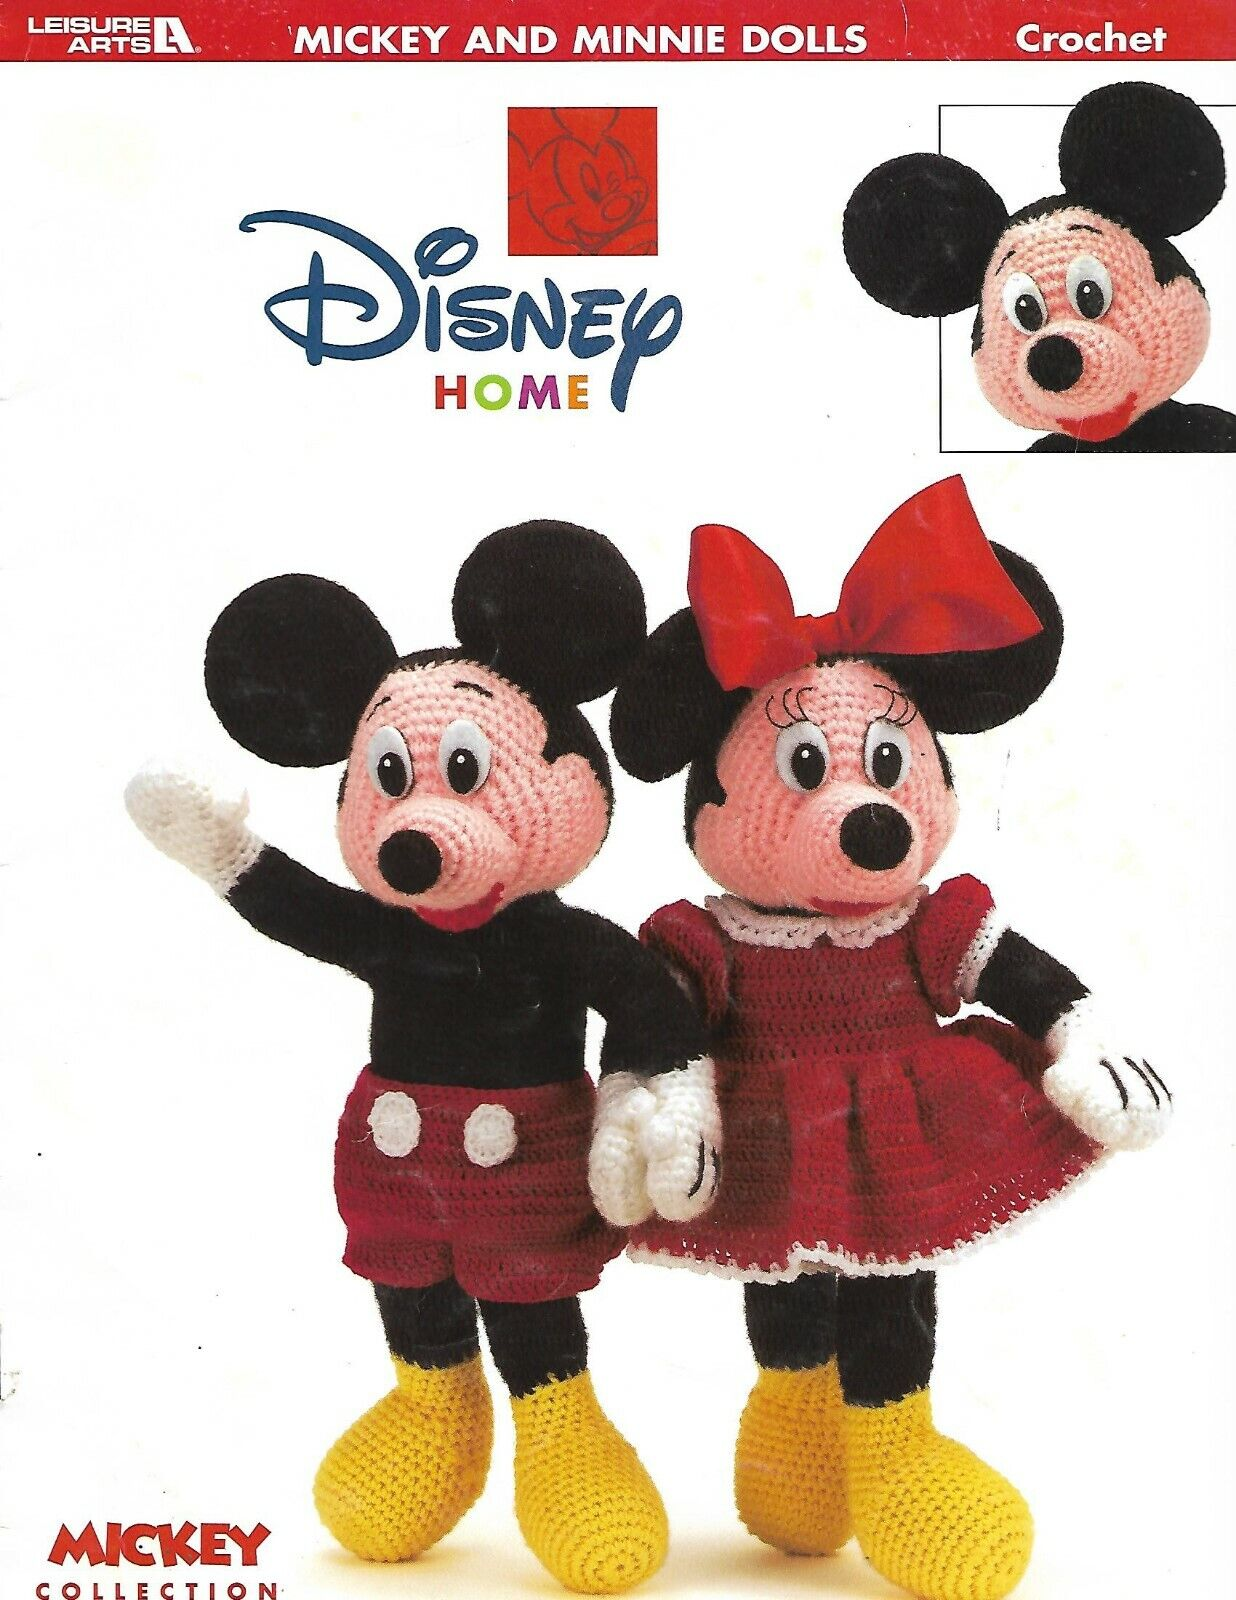 pattern booklet RARE Disney mickey minnie characters dolls to crochet